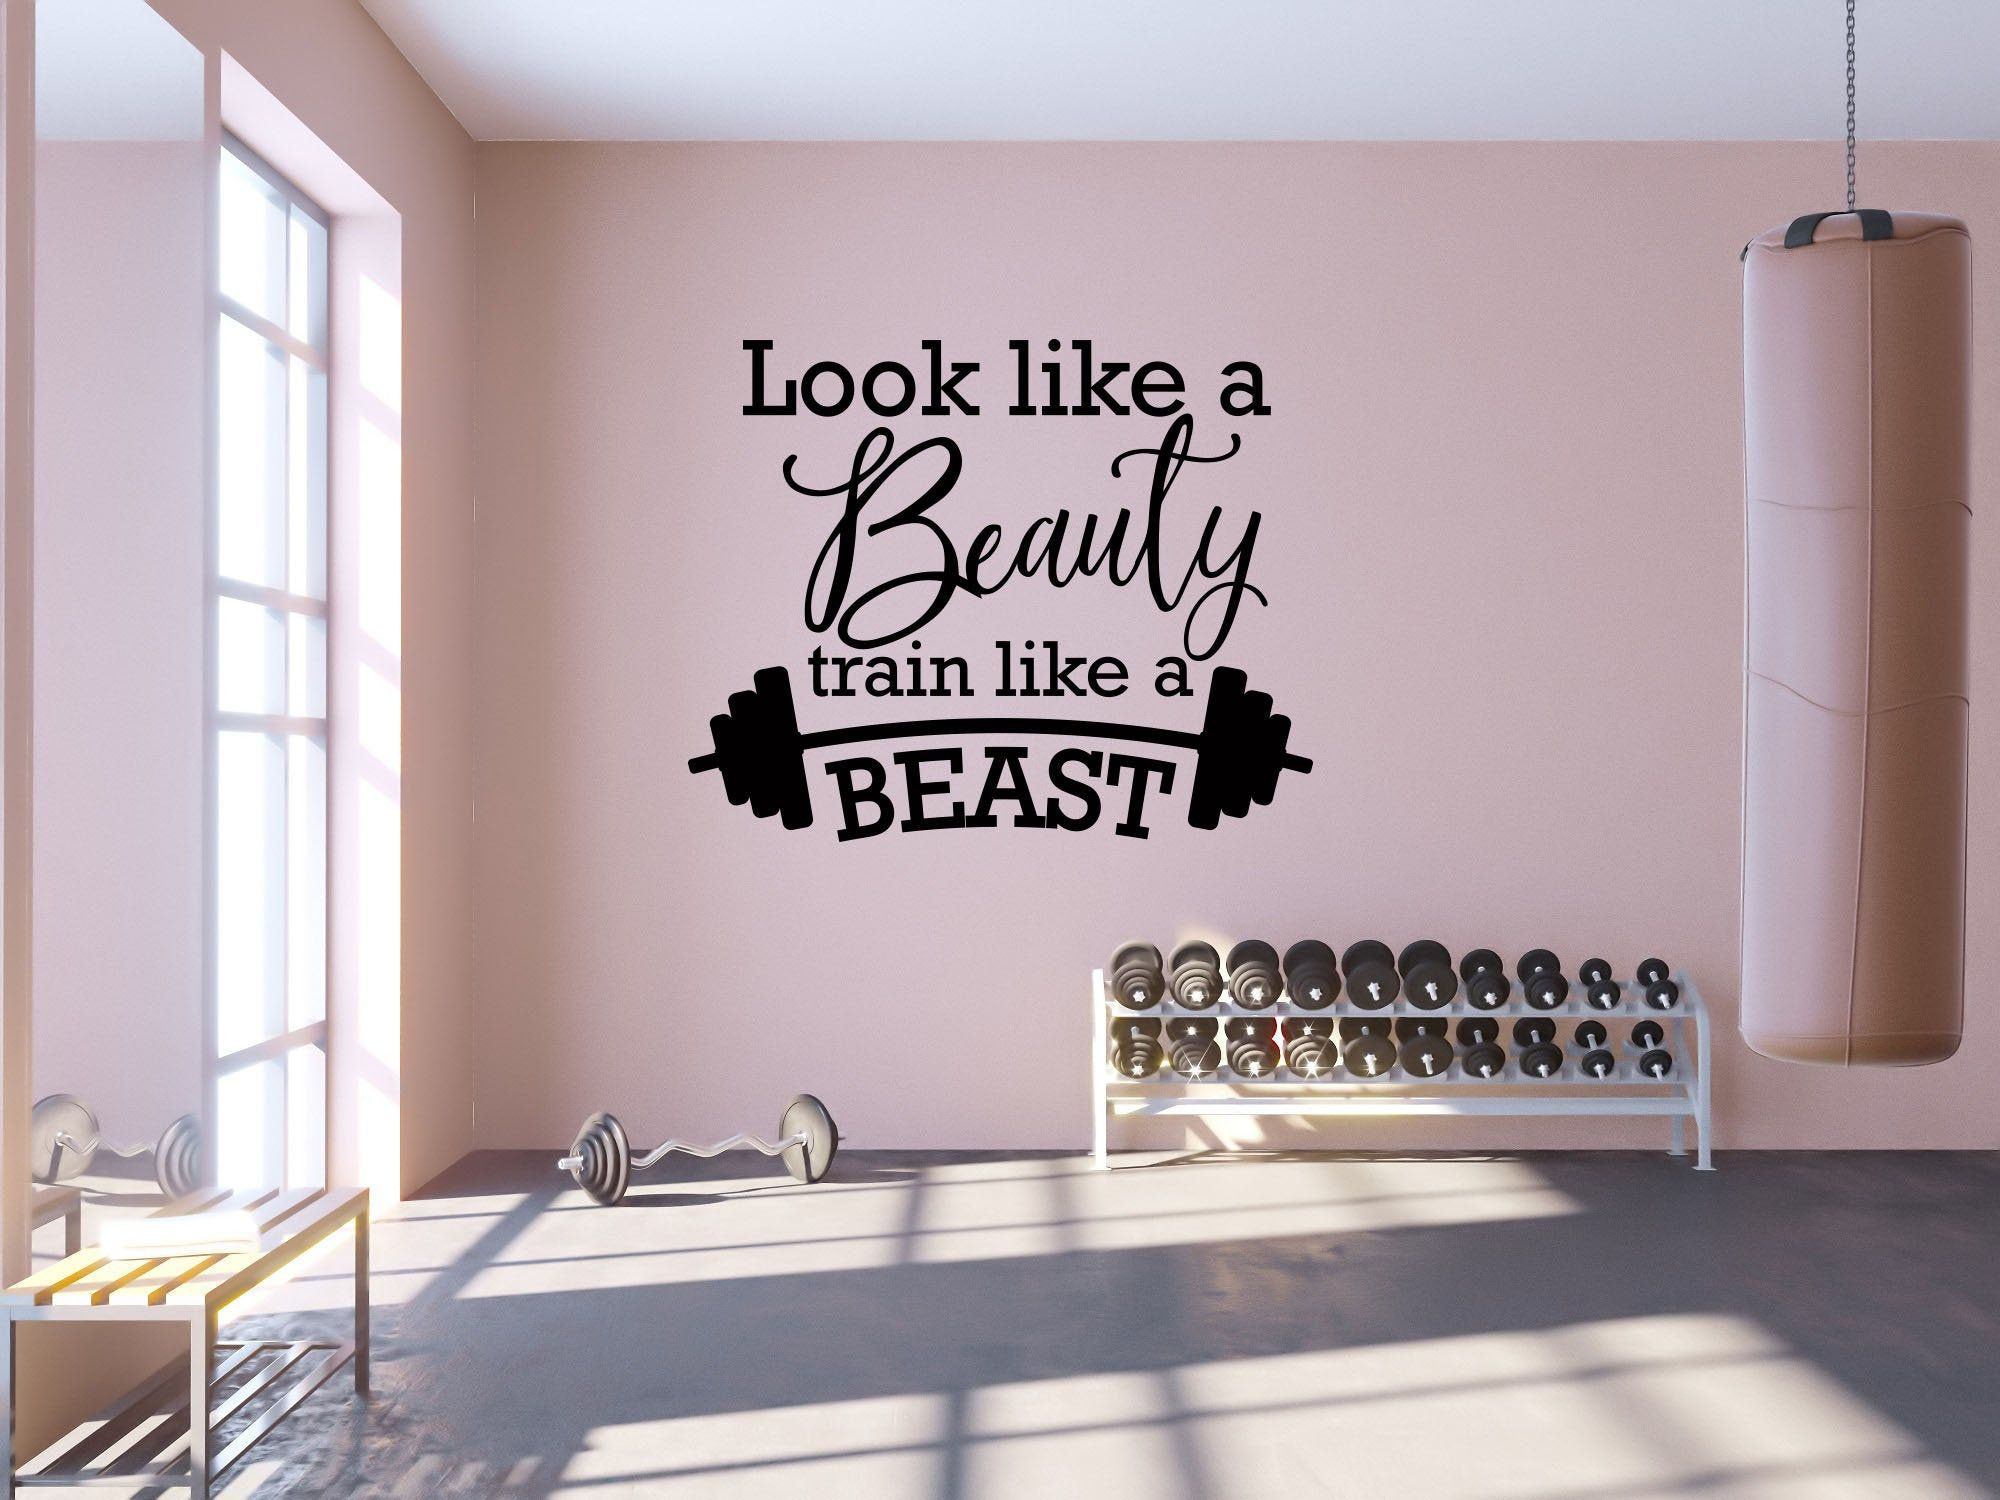 Gym Wall Decal Look Like A Beauty Train Like A Beast Etsy In 2021 Gym Wall Decor Gym Room At Home Gym Wall Decal